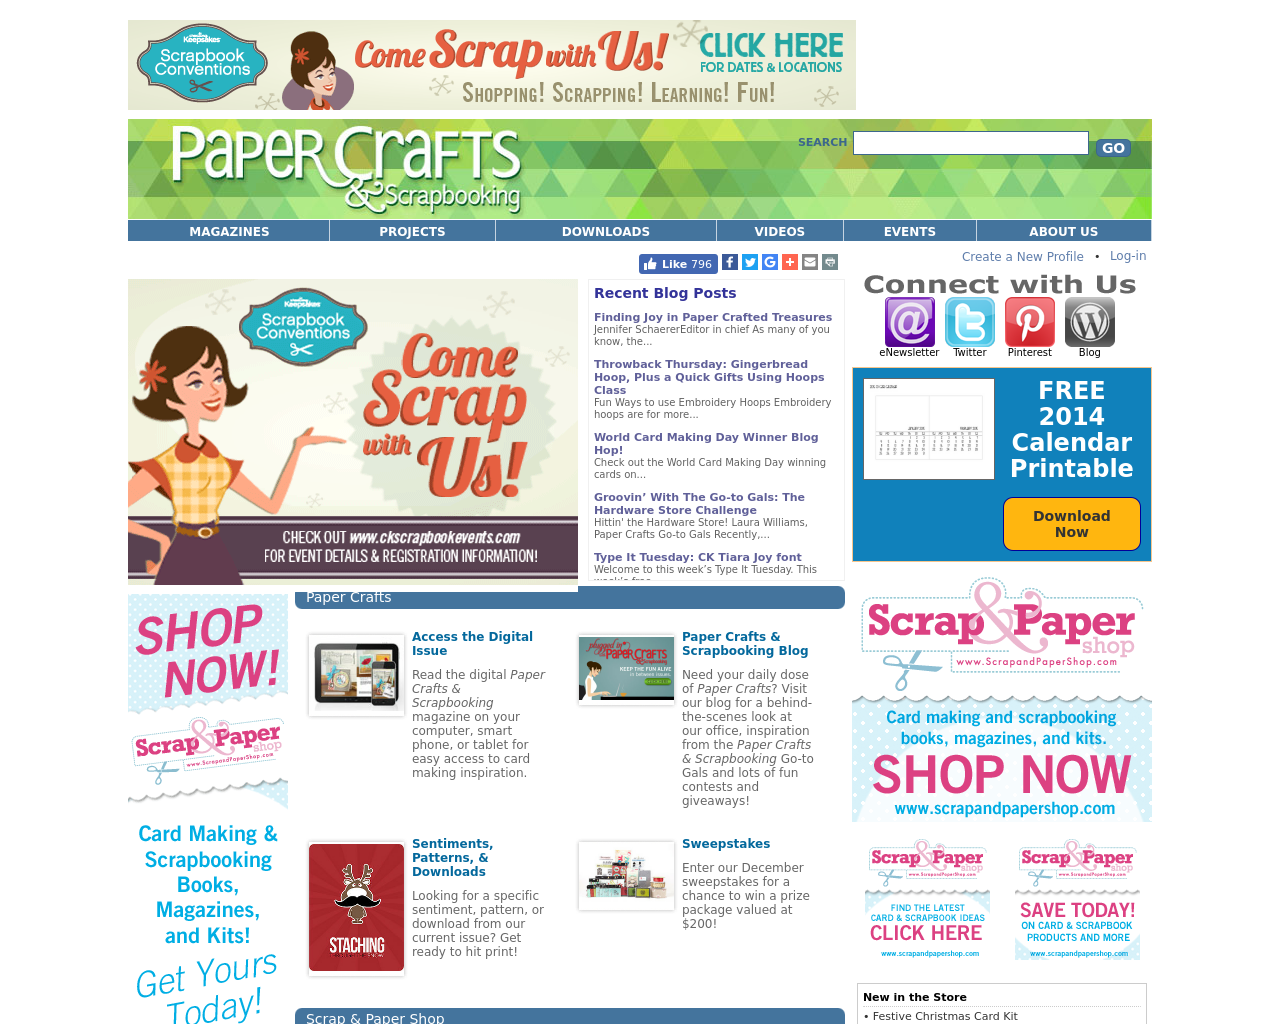 Paper-Crafts-And-Scrapbooking-Advertising-Reviews-Pricing